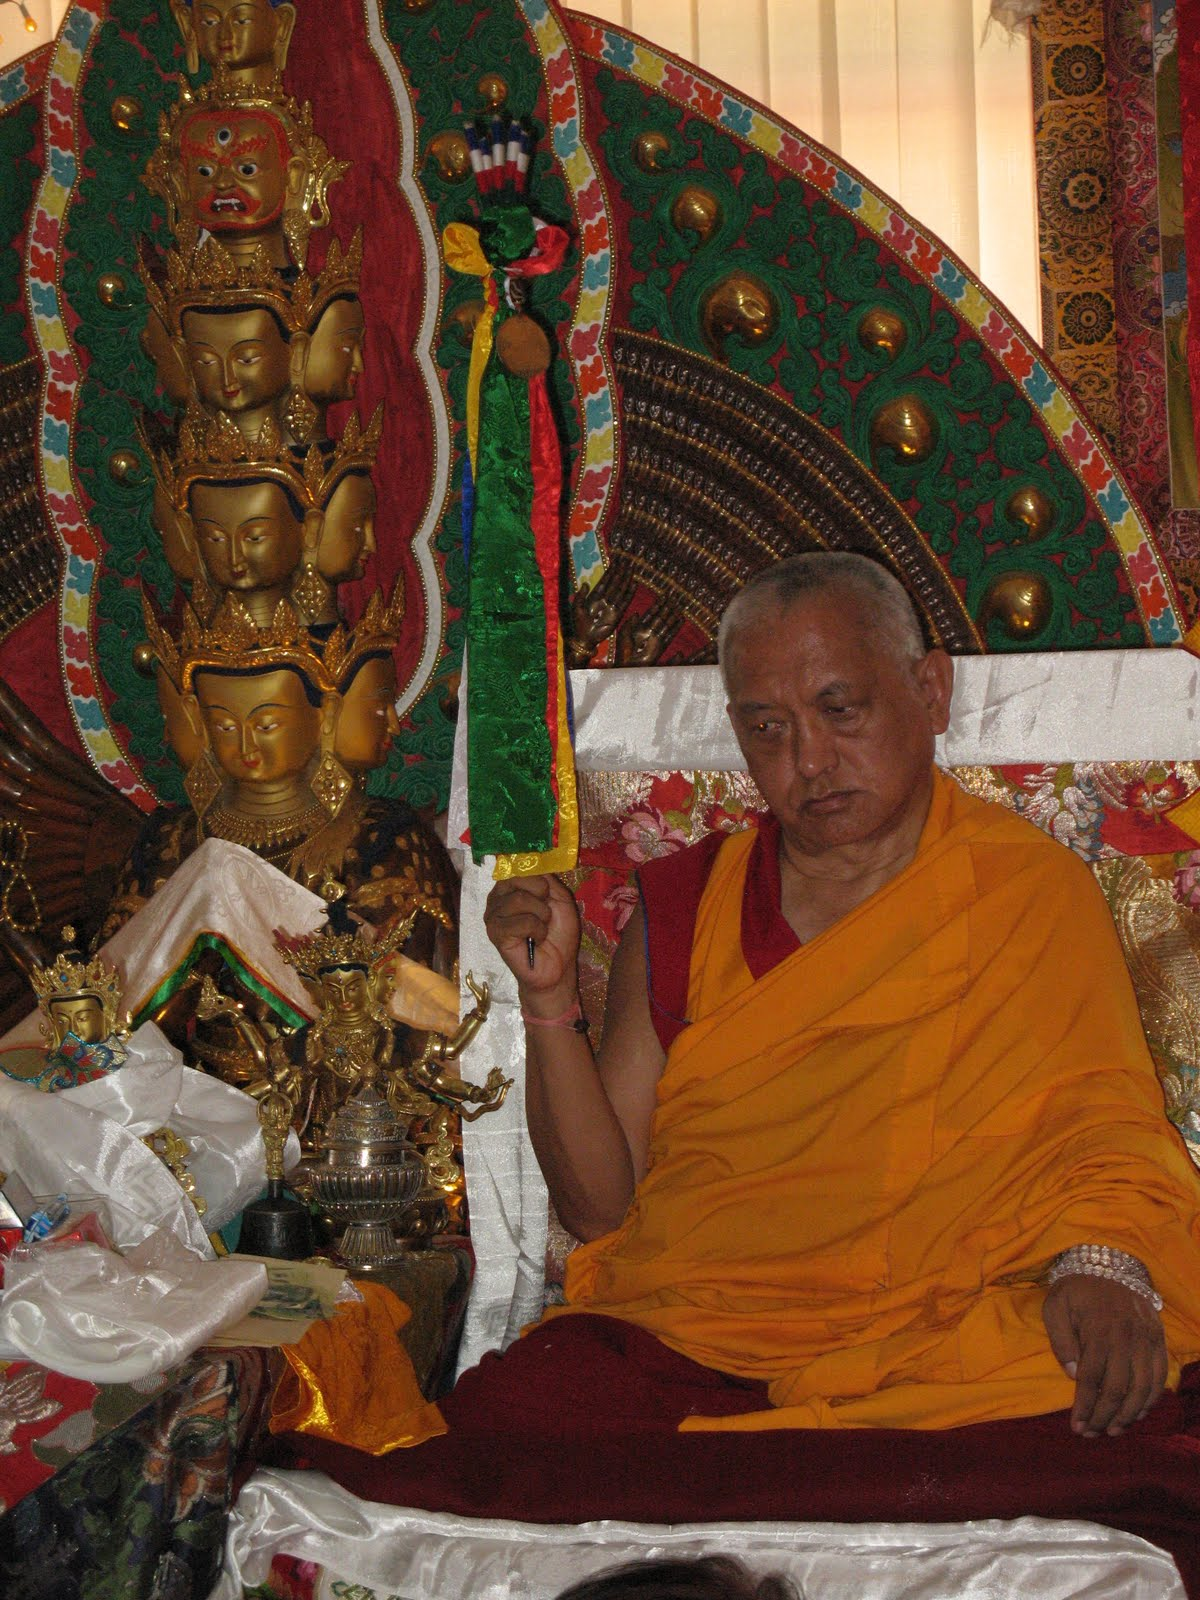 Special long life puja privately offered to Lama Zopa Rinpoche, Kopan Monastery, June 2009.